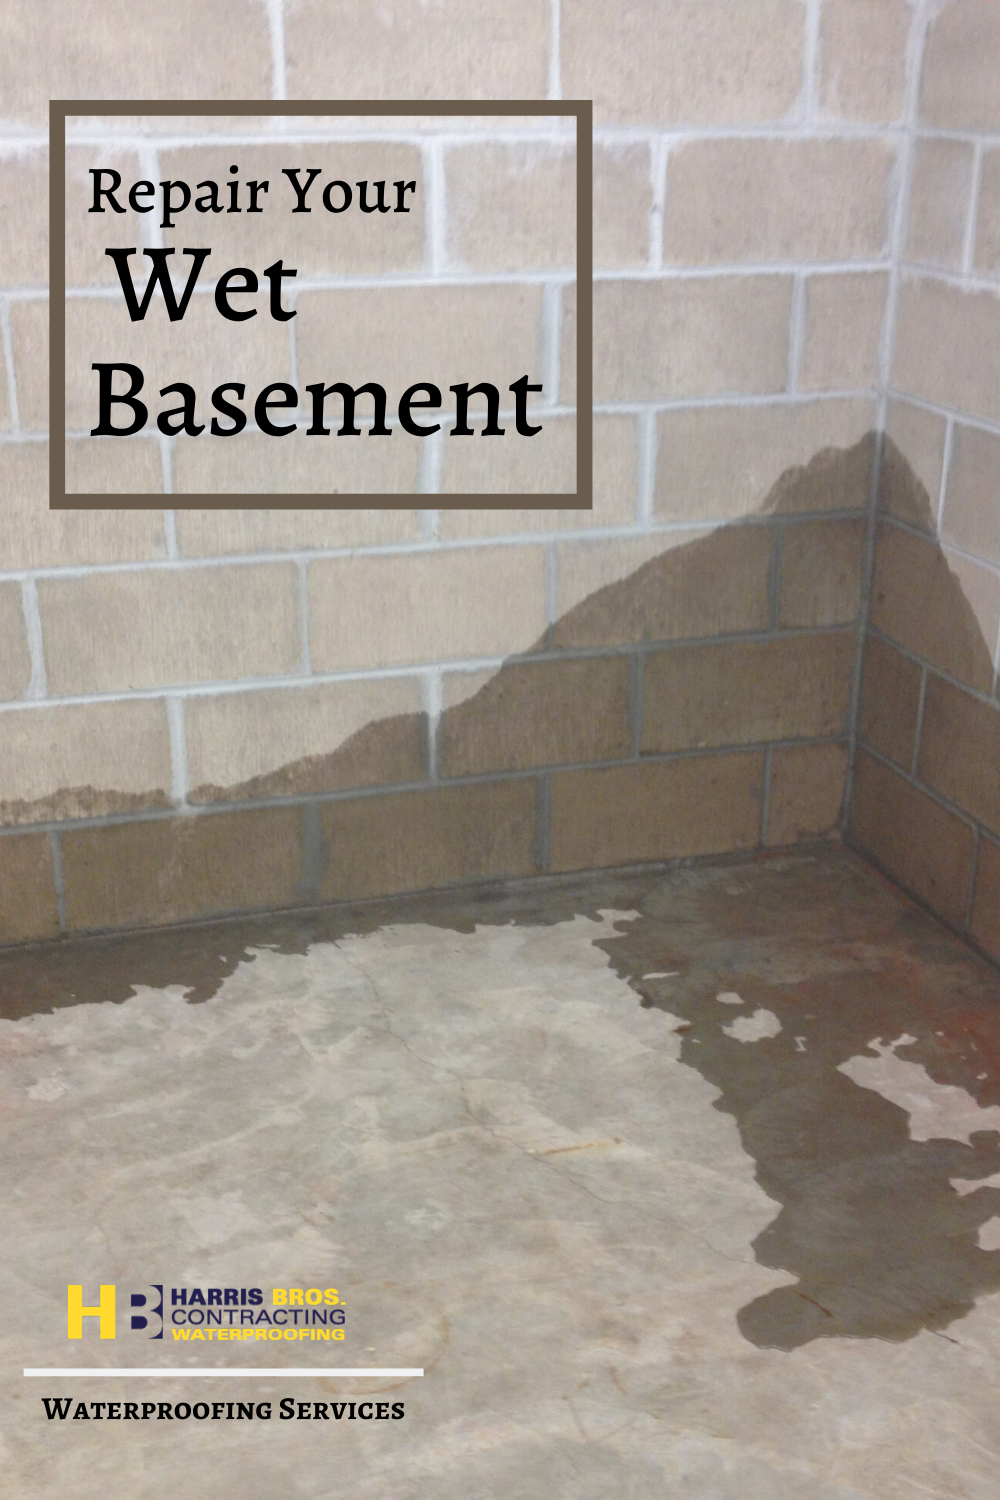 Wet Basement Smithville In 2020 Wet Basement Wet Basement Solutions Basement